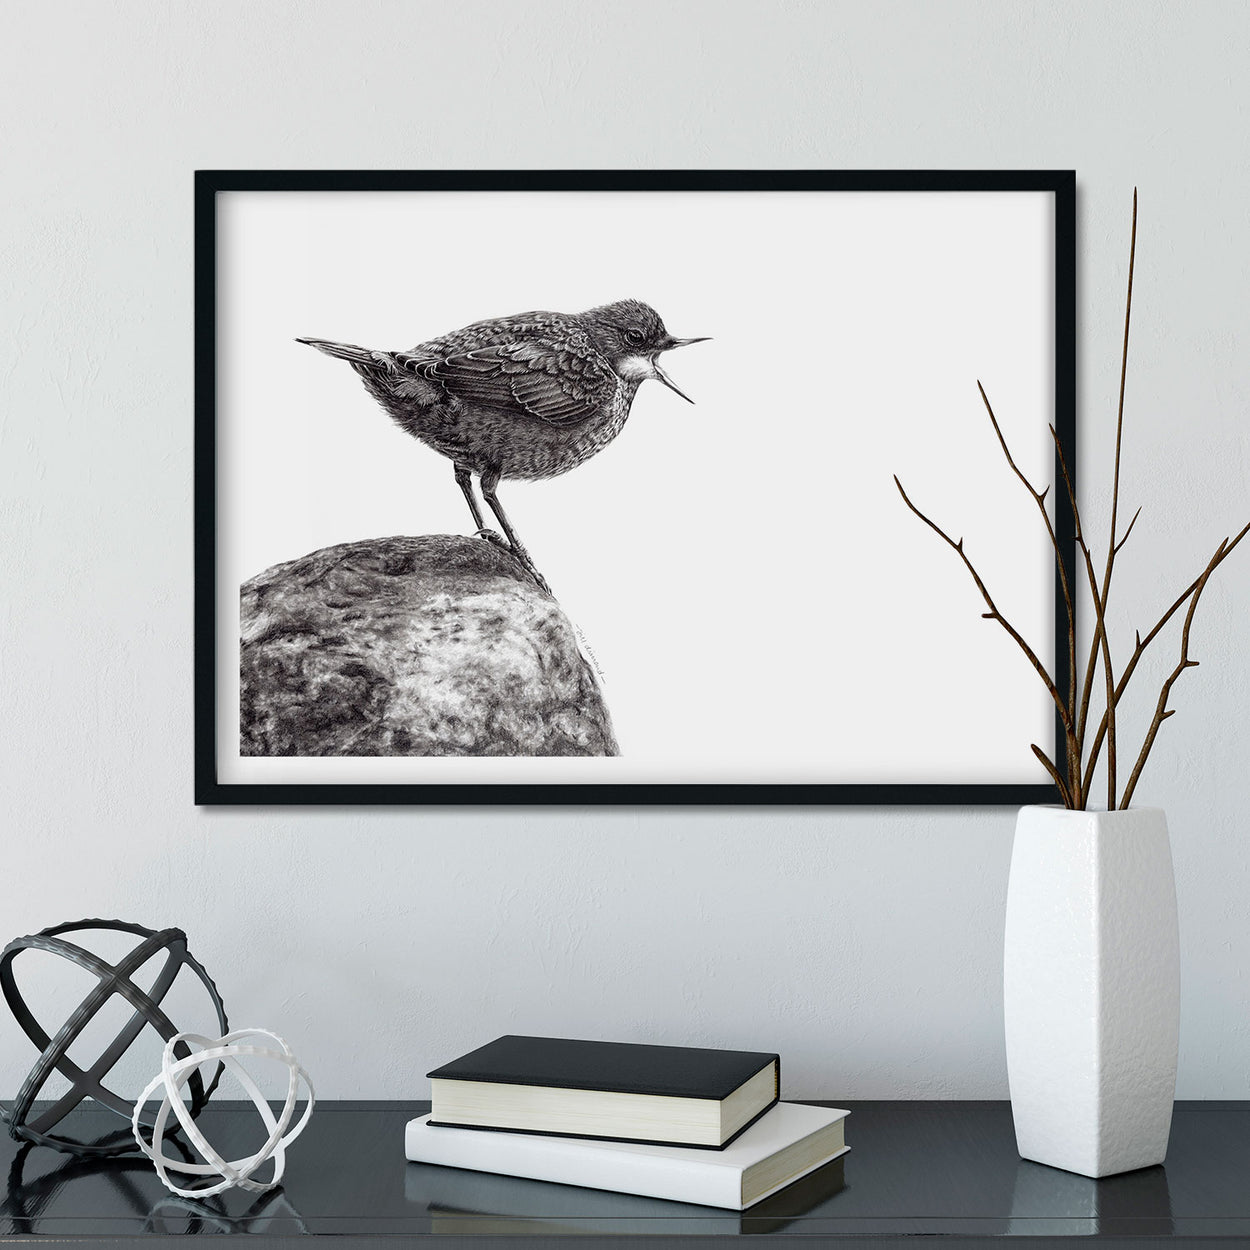 Dipper Wall Art Framed - The Thriving Wild